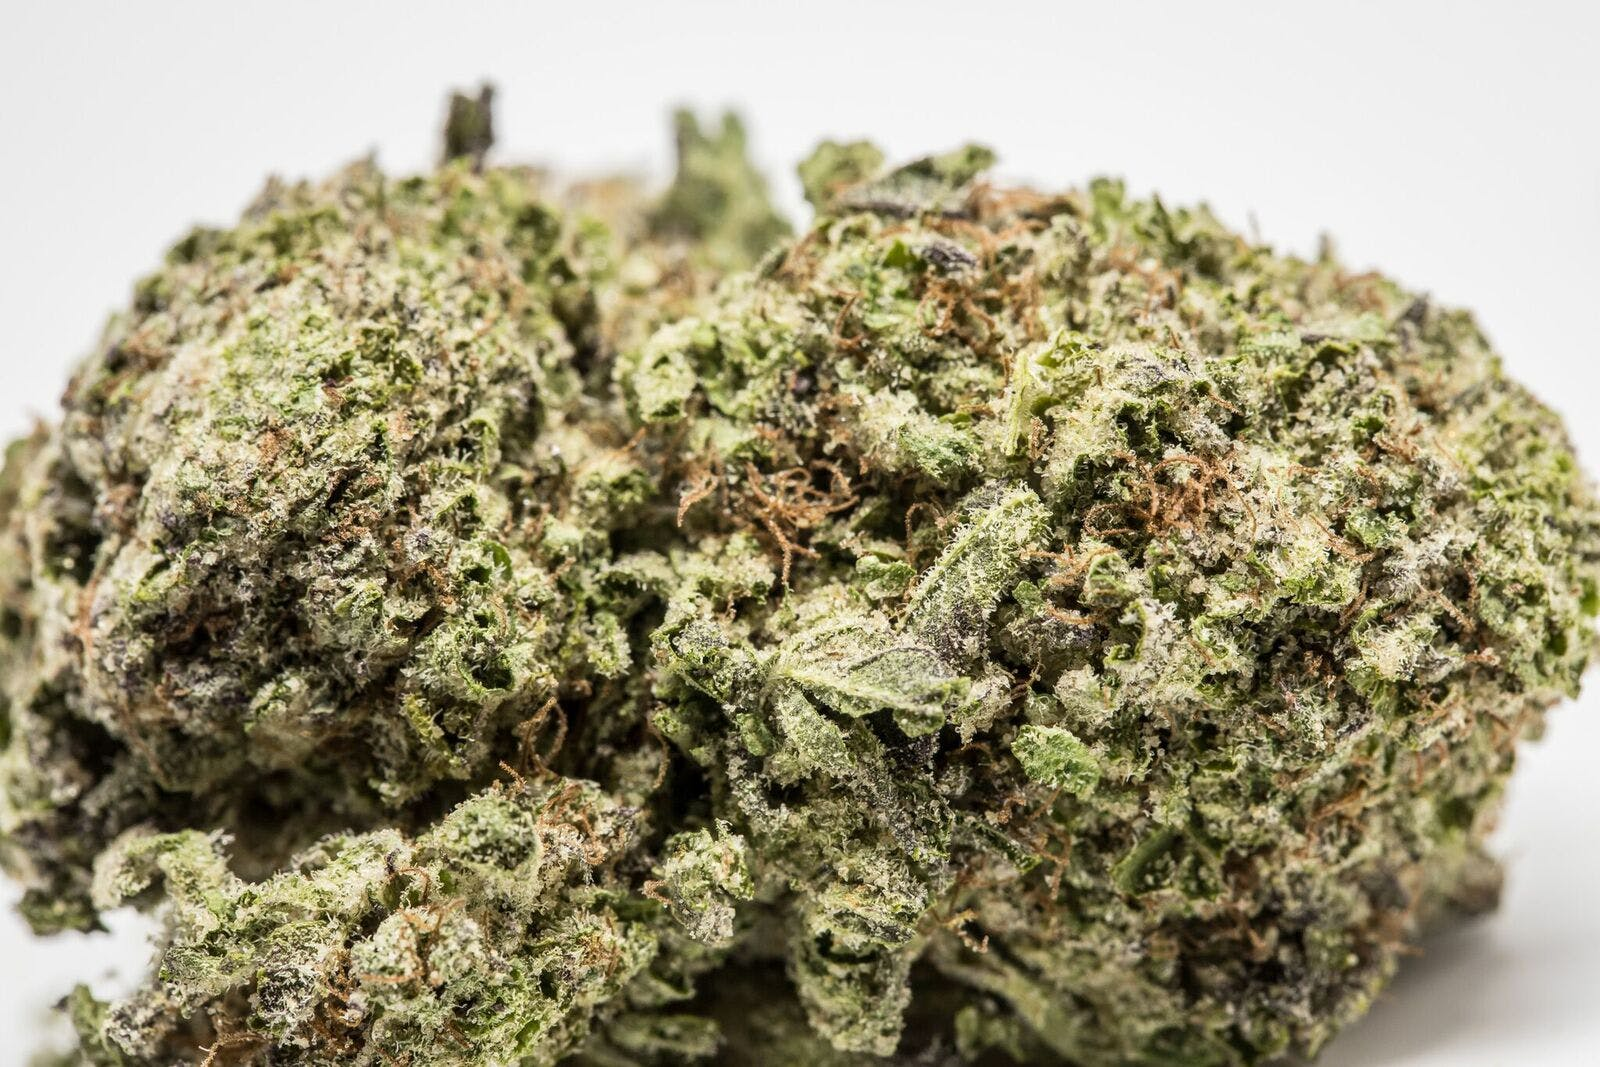 Candy Cookies Weed; Candy Cookies Cannabis Strain; Candy Cookies Hybrid Marijuana Strain